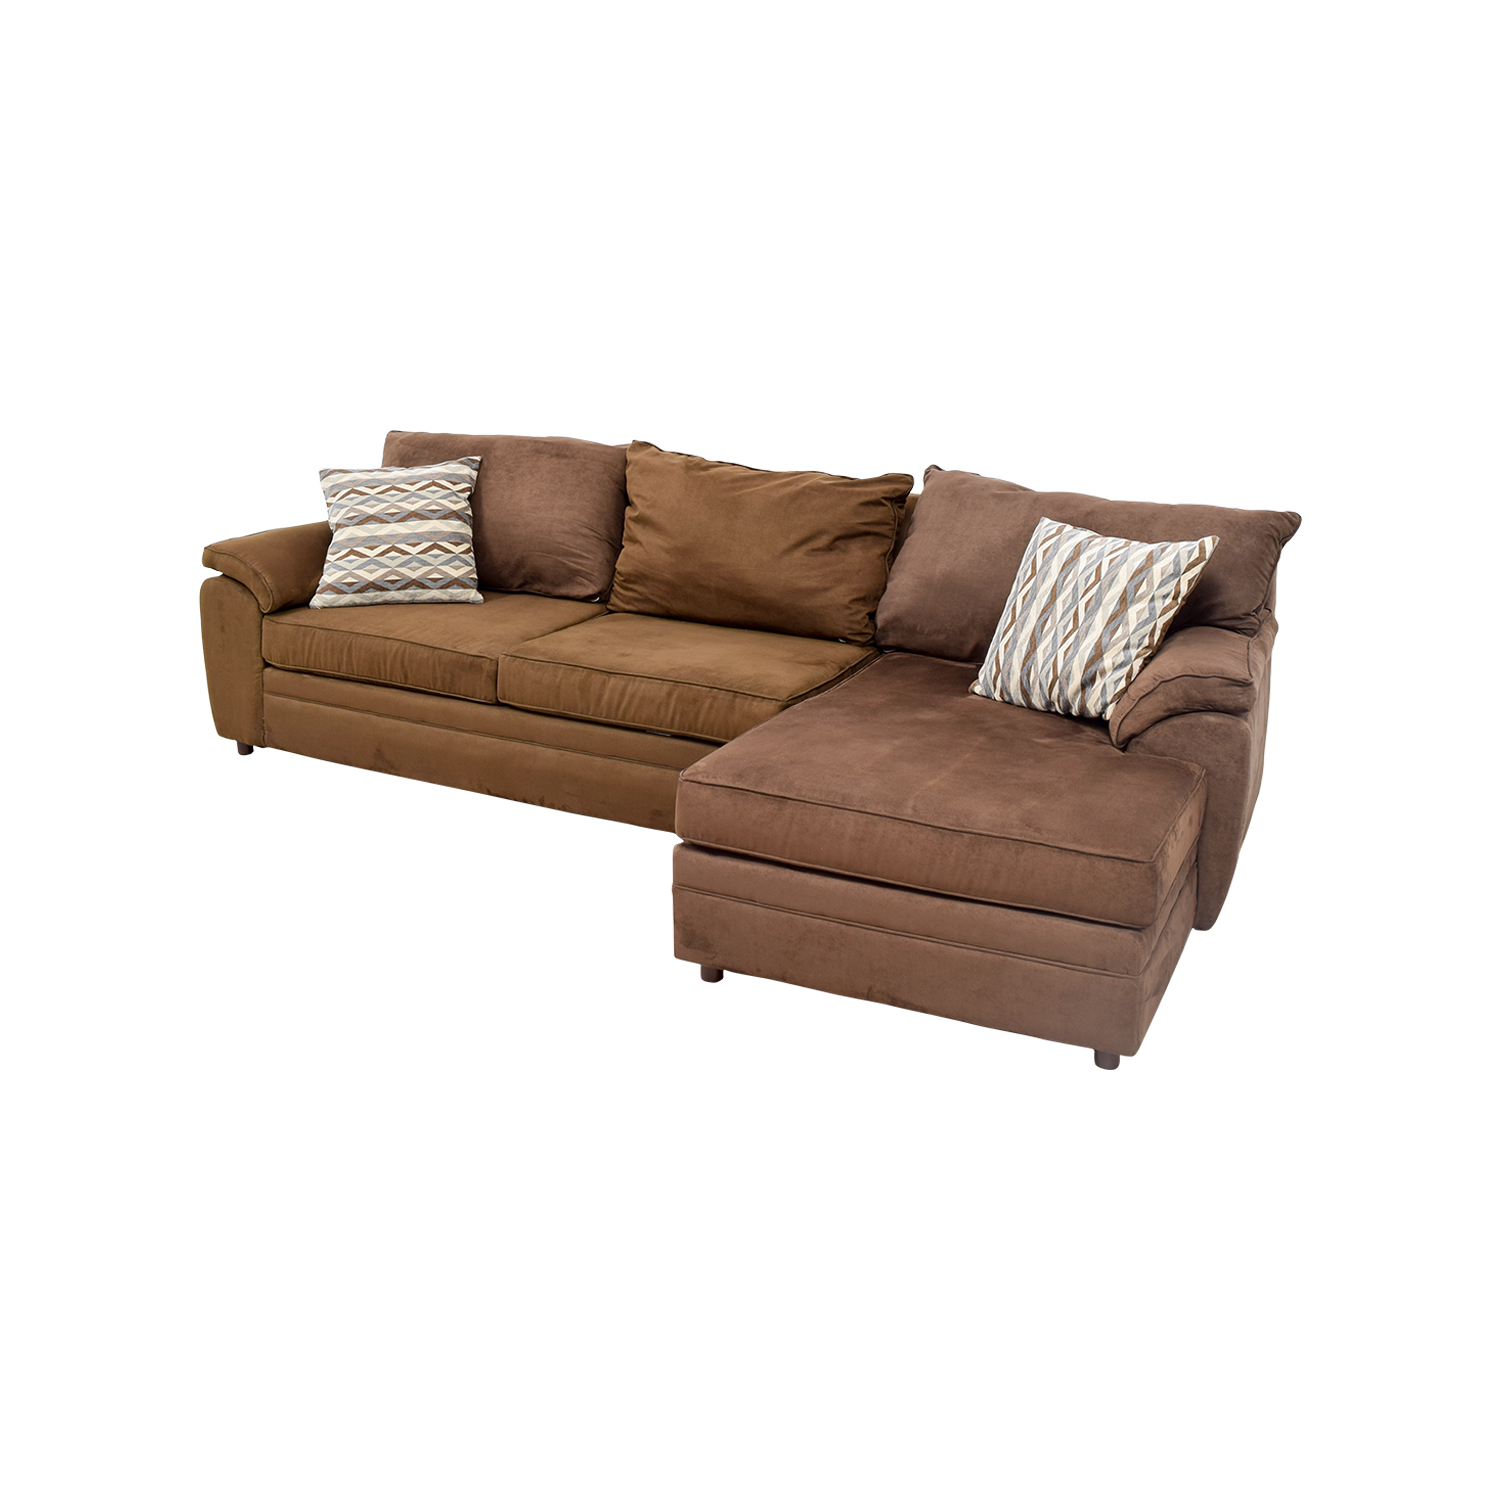 Small Sectional Sofa Bobs Furniture